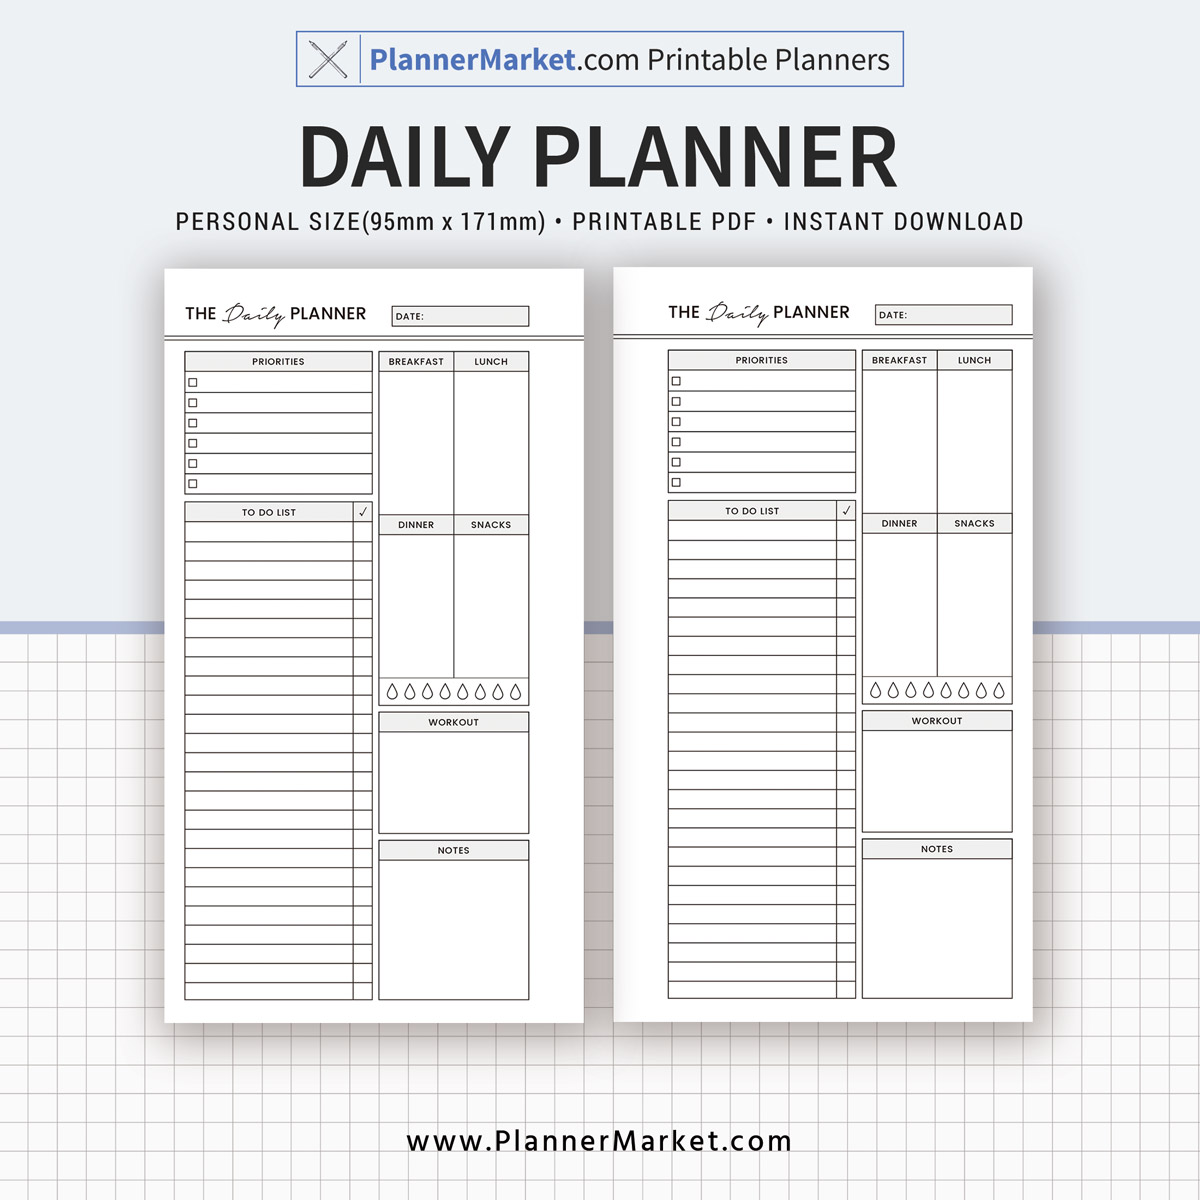 Daily Planner, 2018 Planner, Personal Size Inserts, Planner Refill